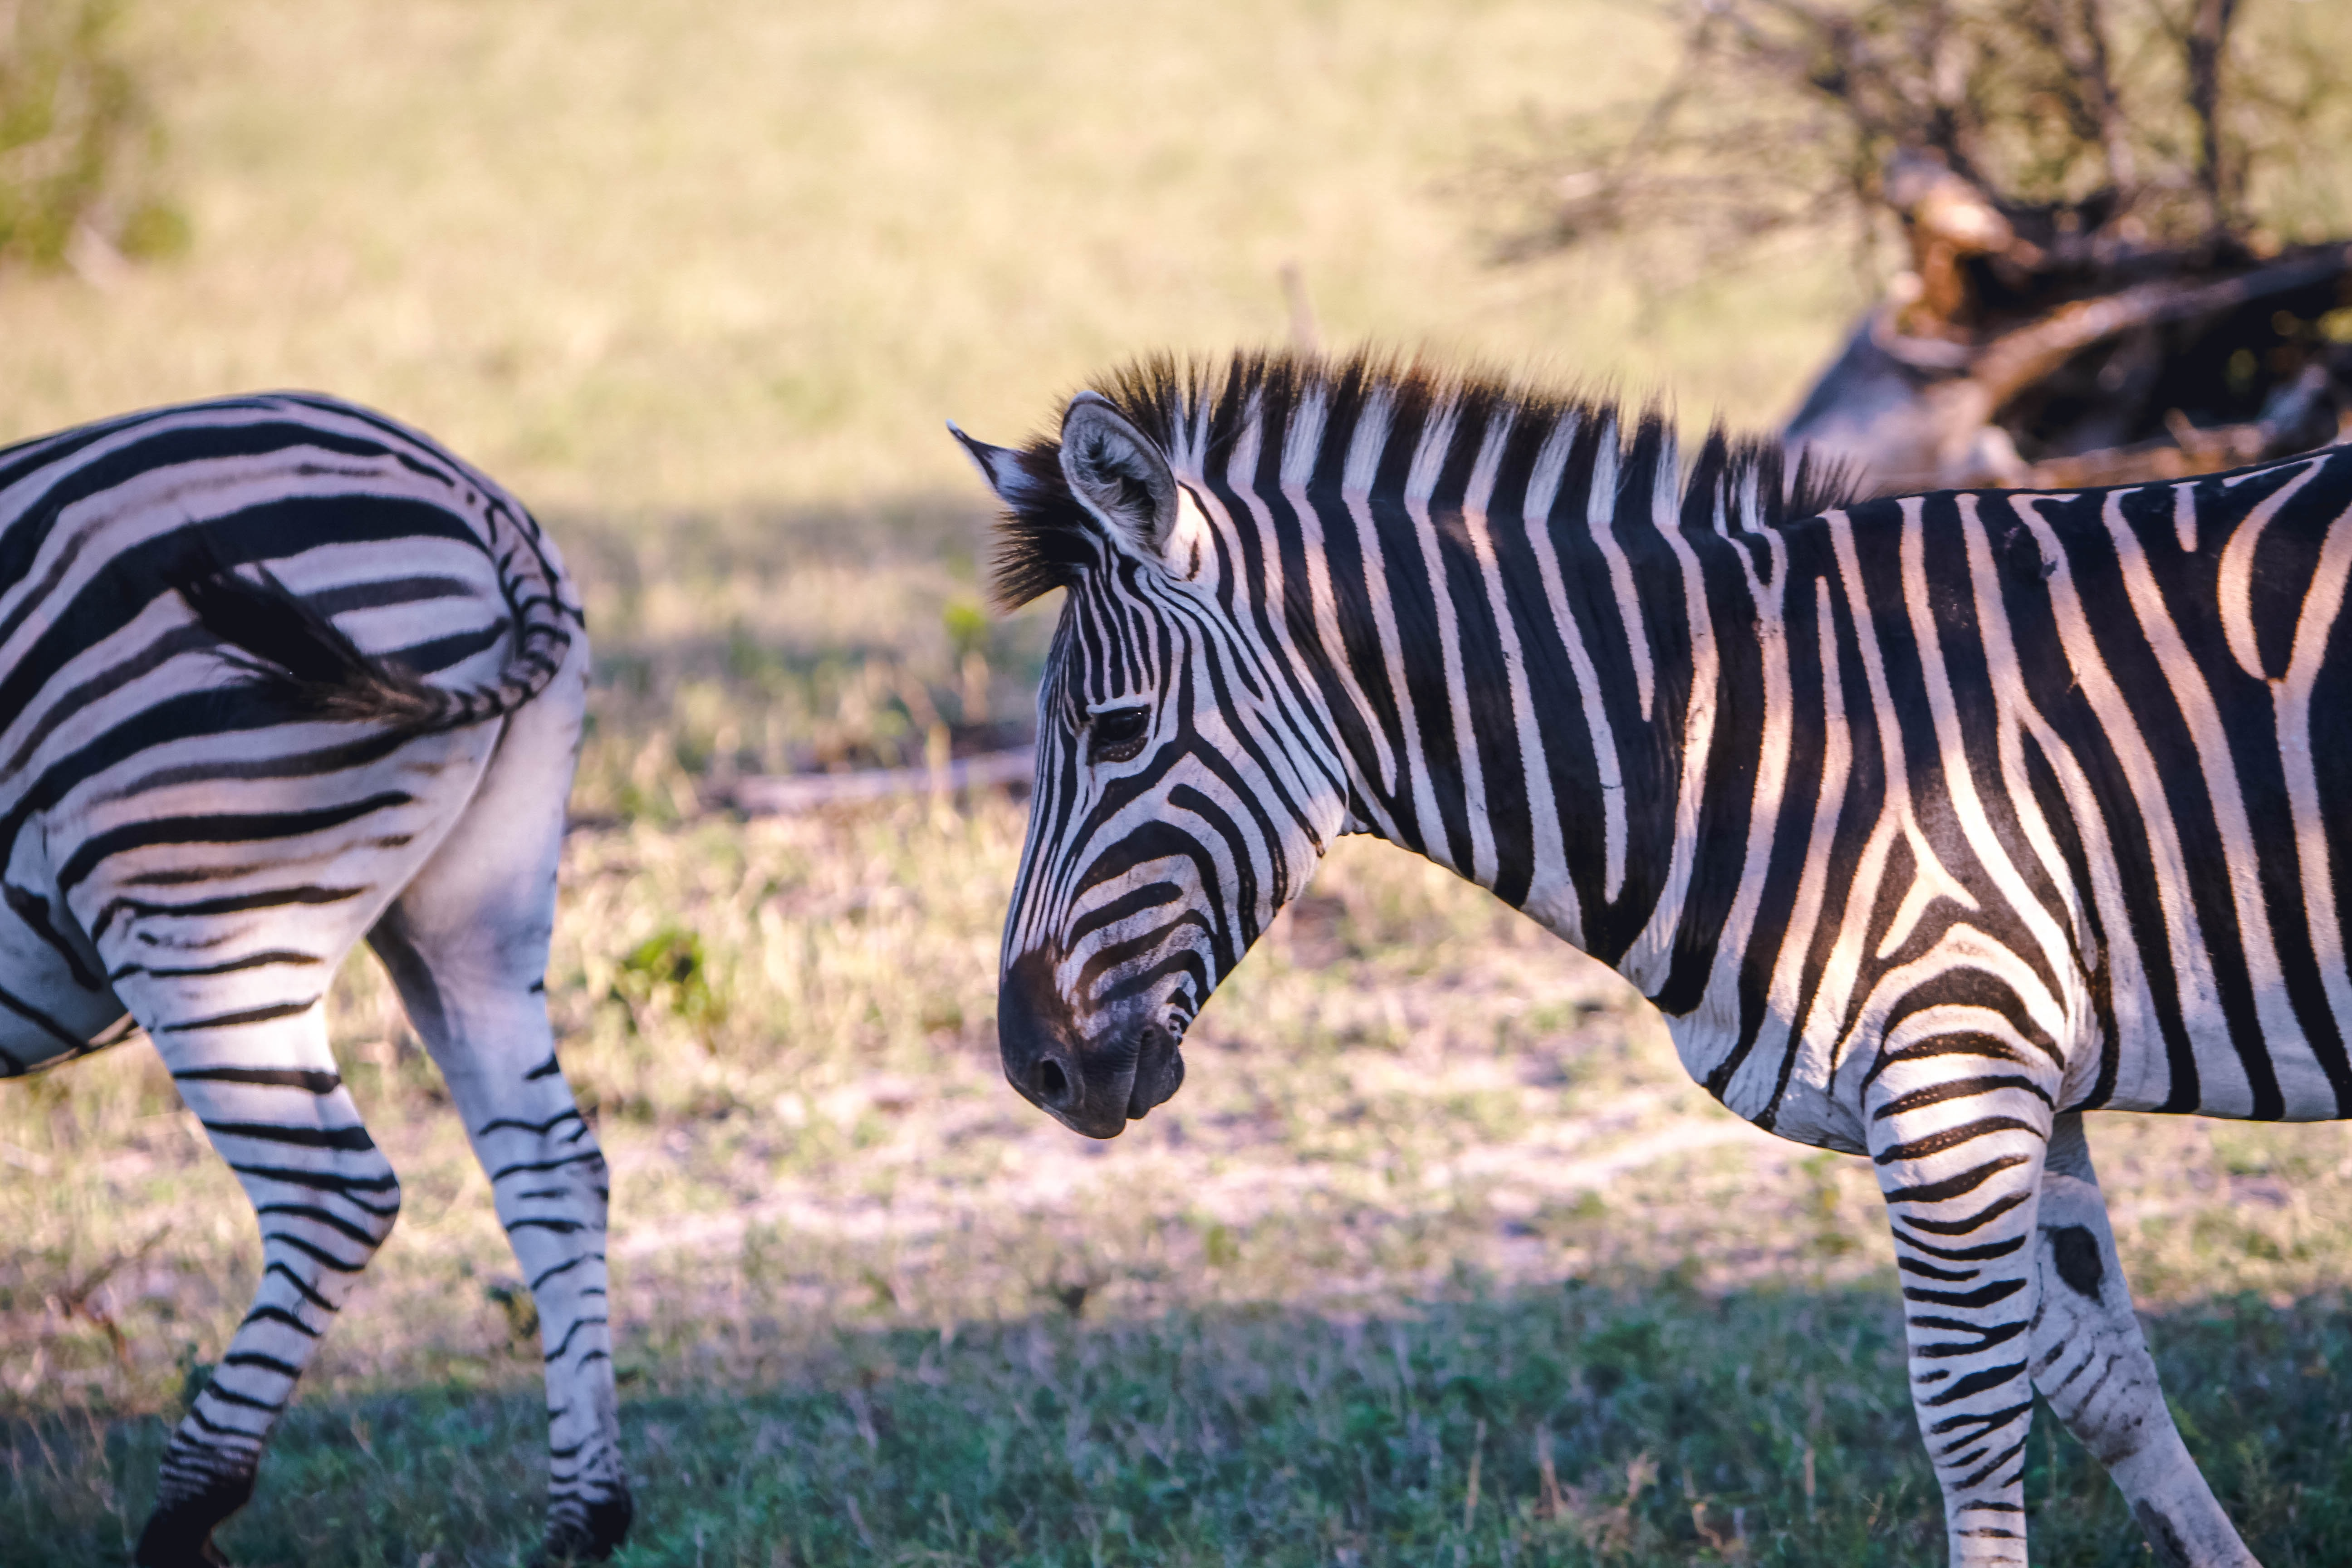 two zebras on green grass during daytime